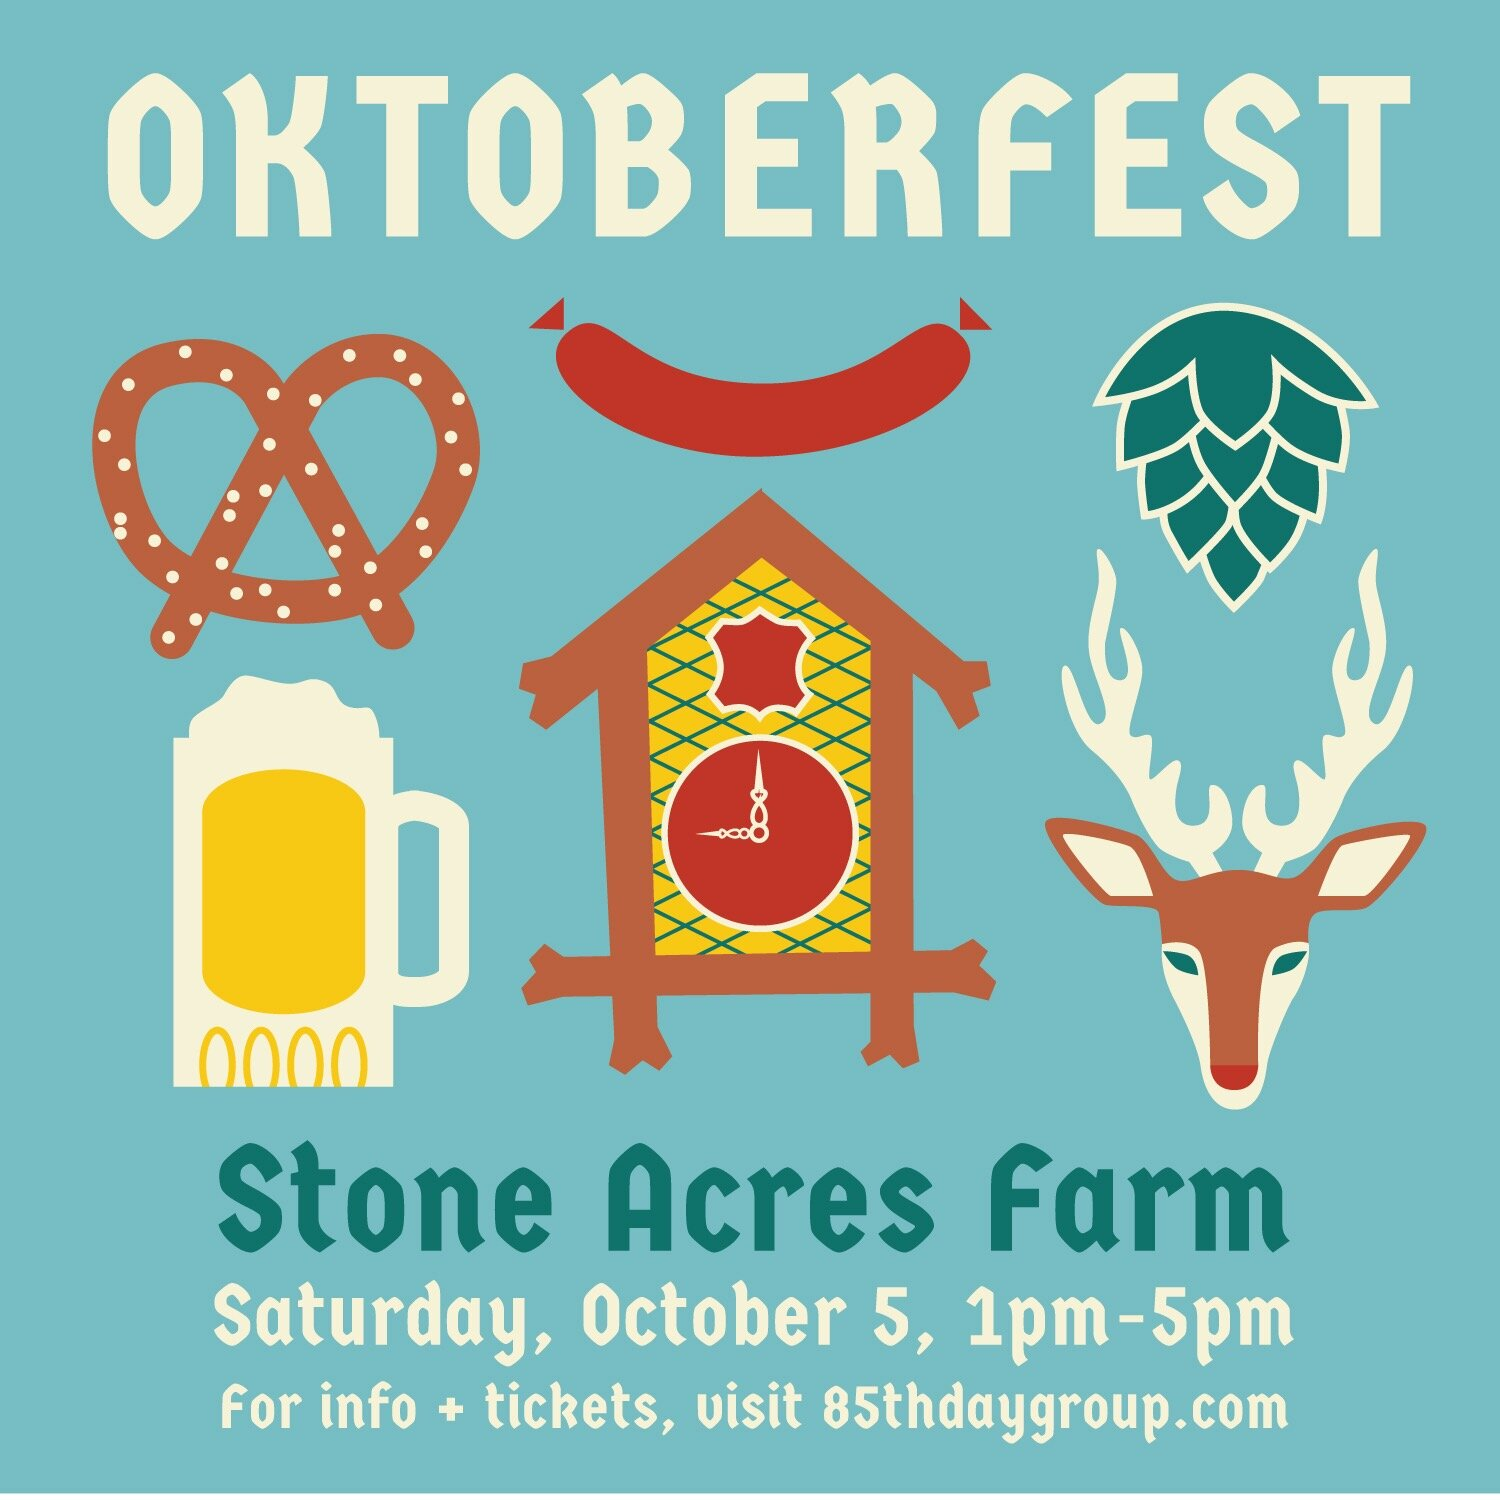 octoberfest stone acres farm.jpg